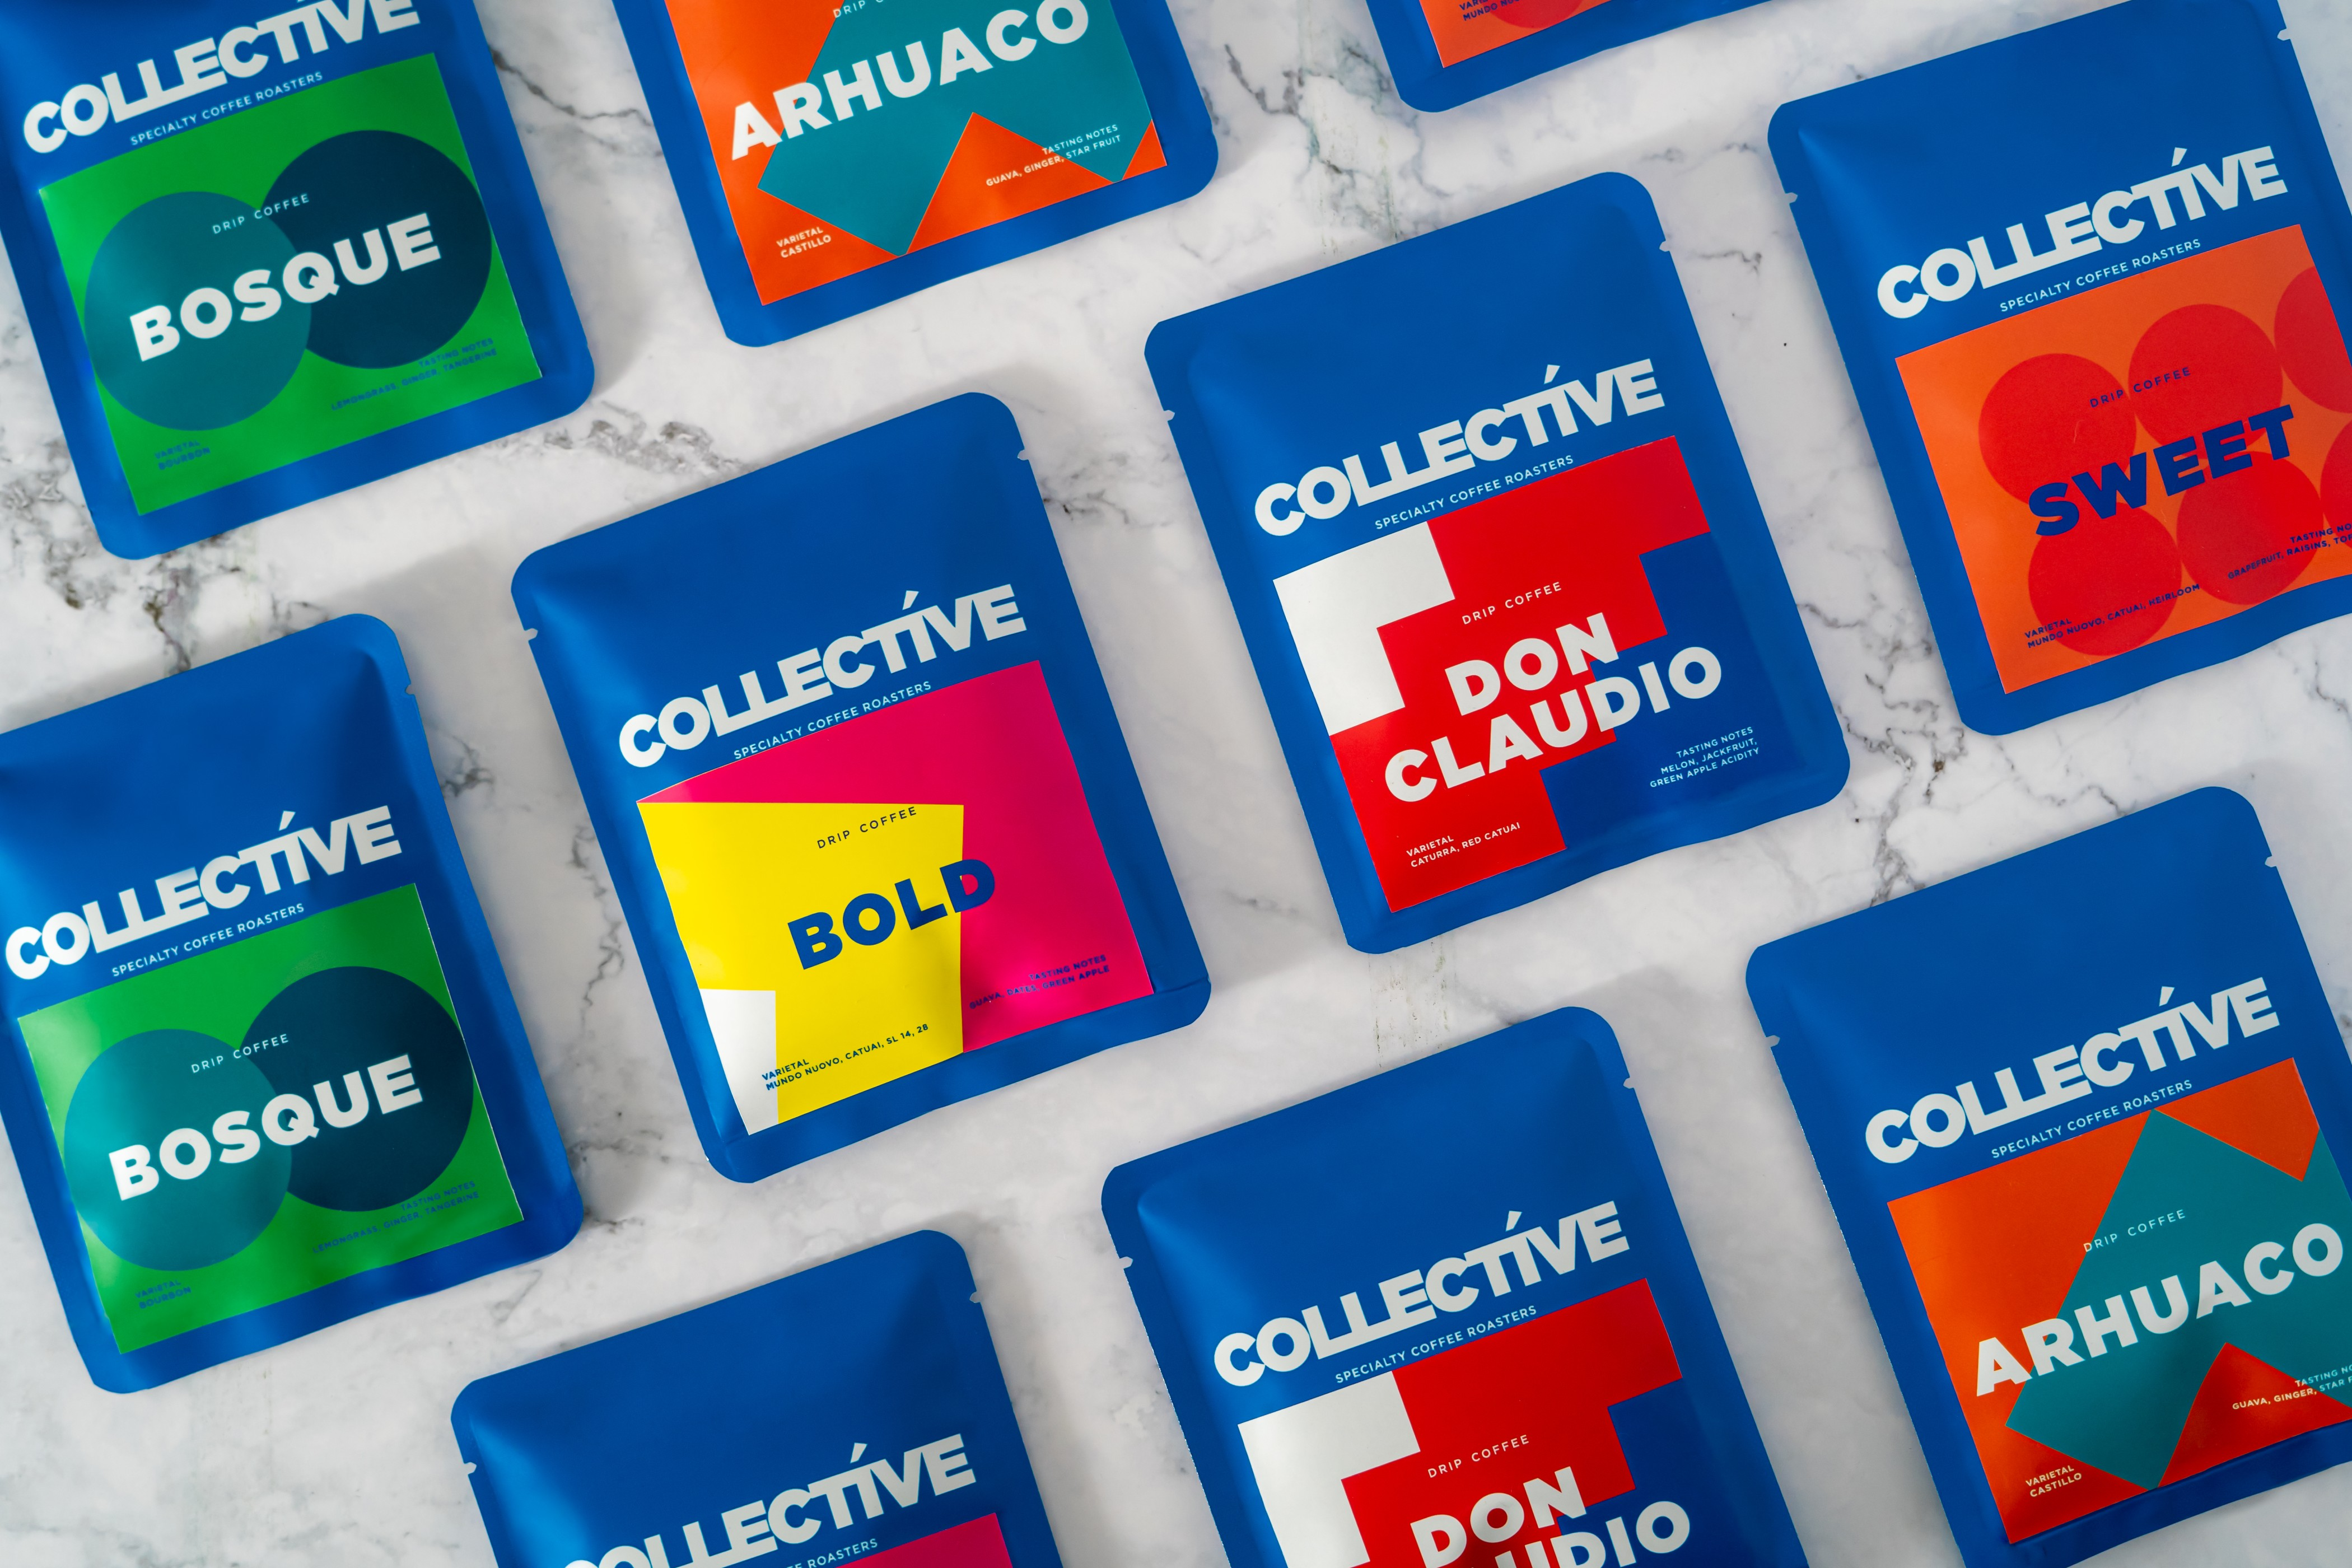 Collective_Mix